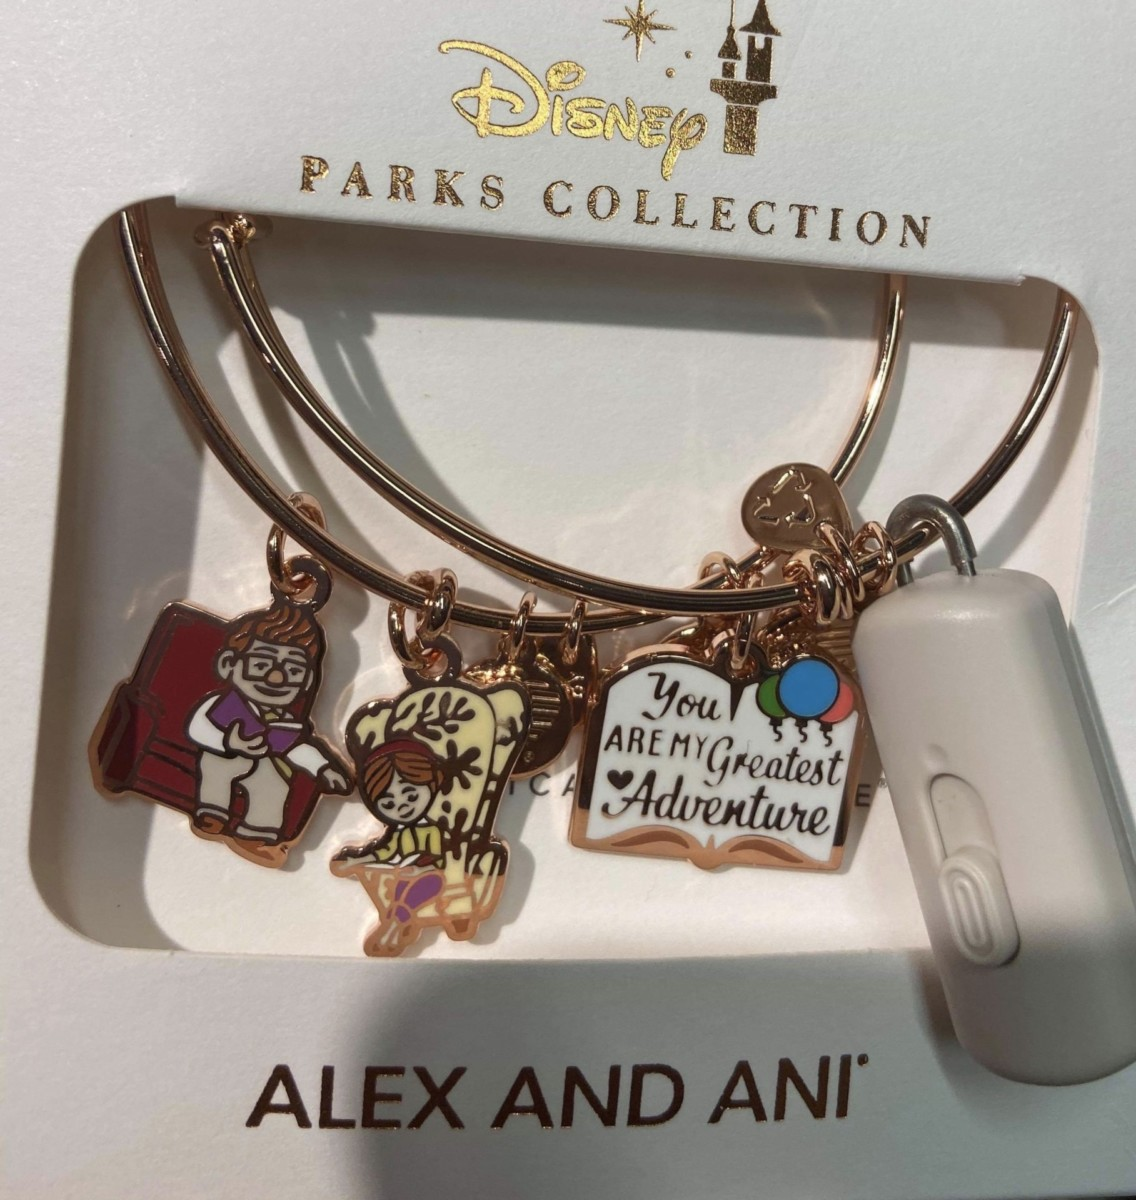 New Pixar Alex and Ani Bracelets! #disneystyle 1